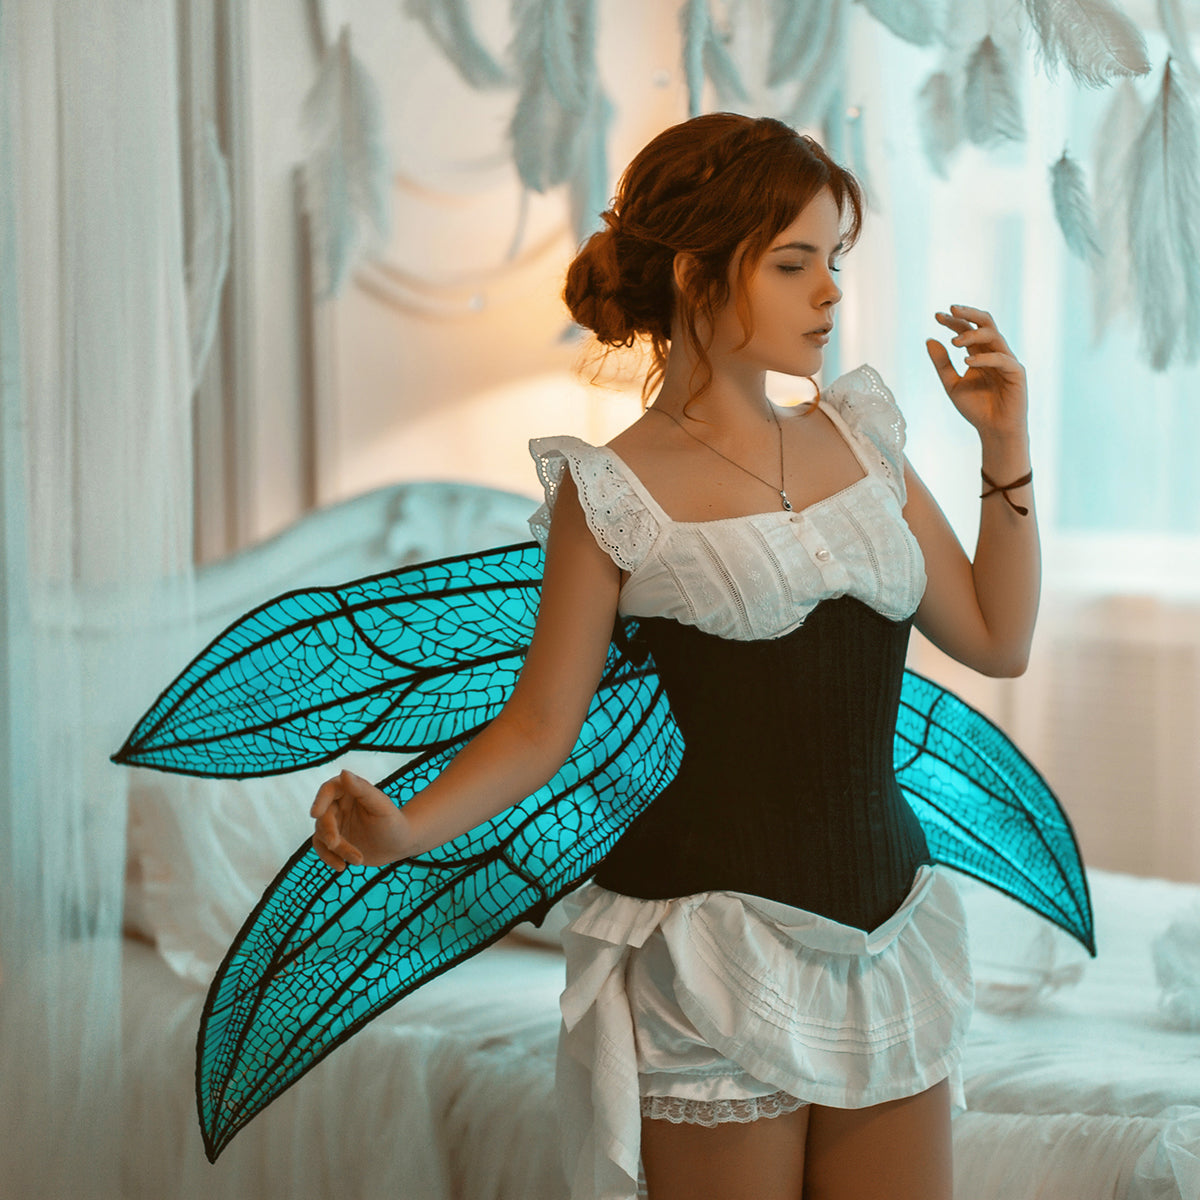 Pixie Wings - Cosplay & Fantasy